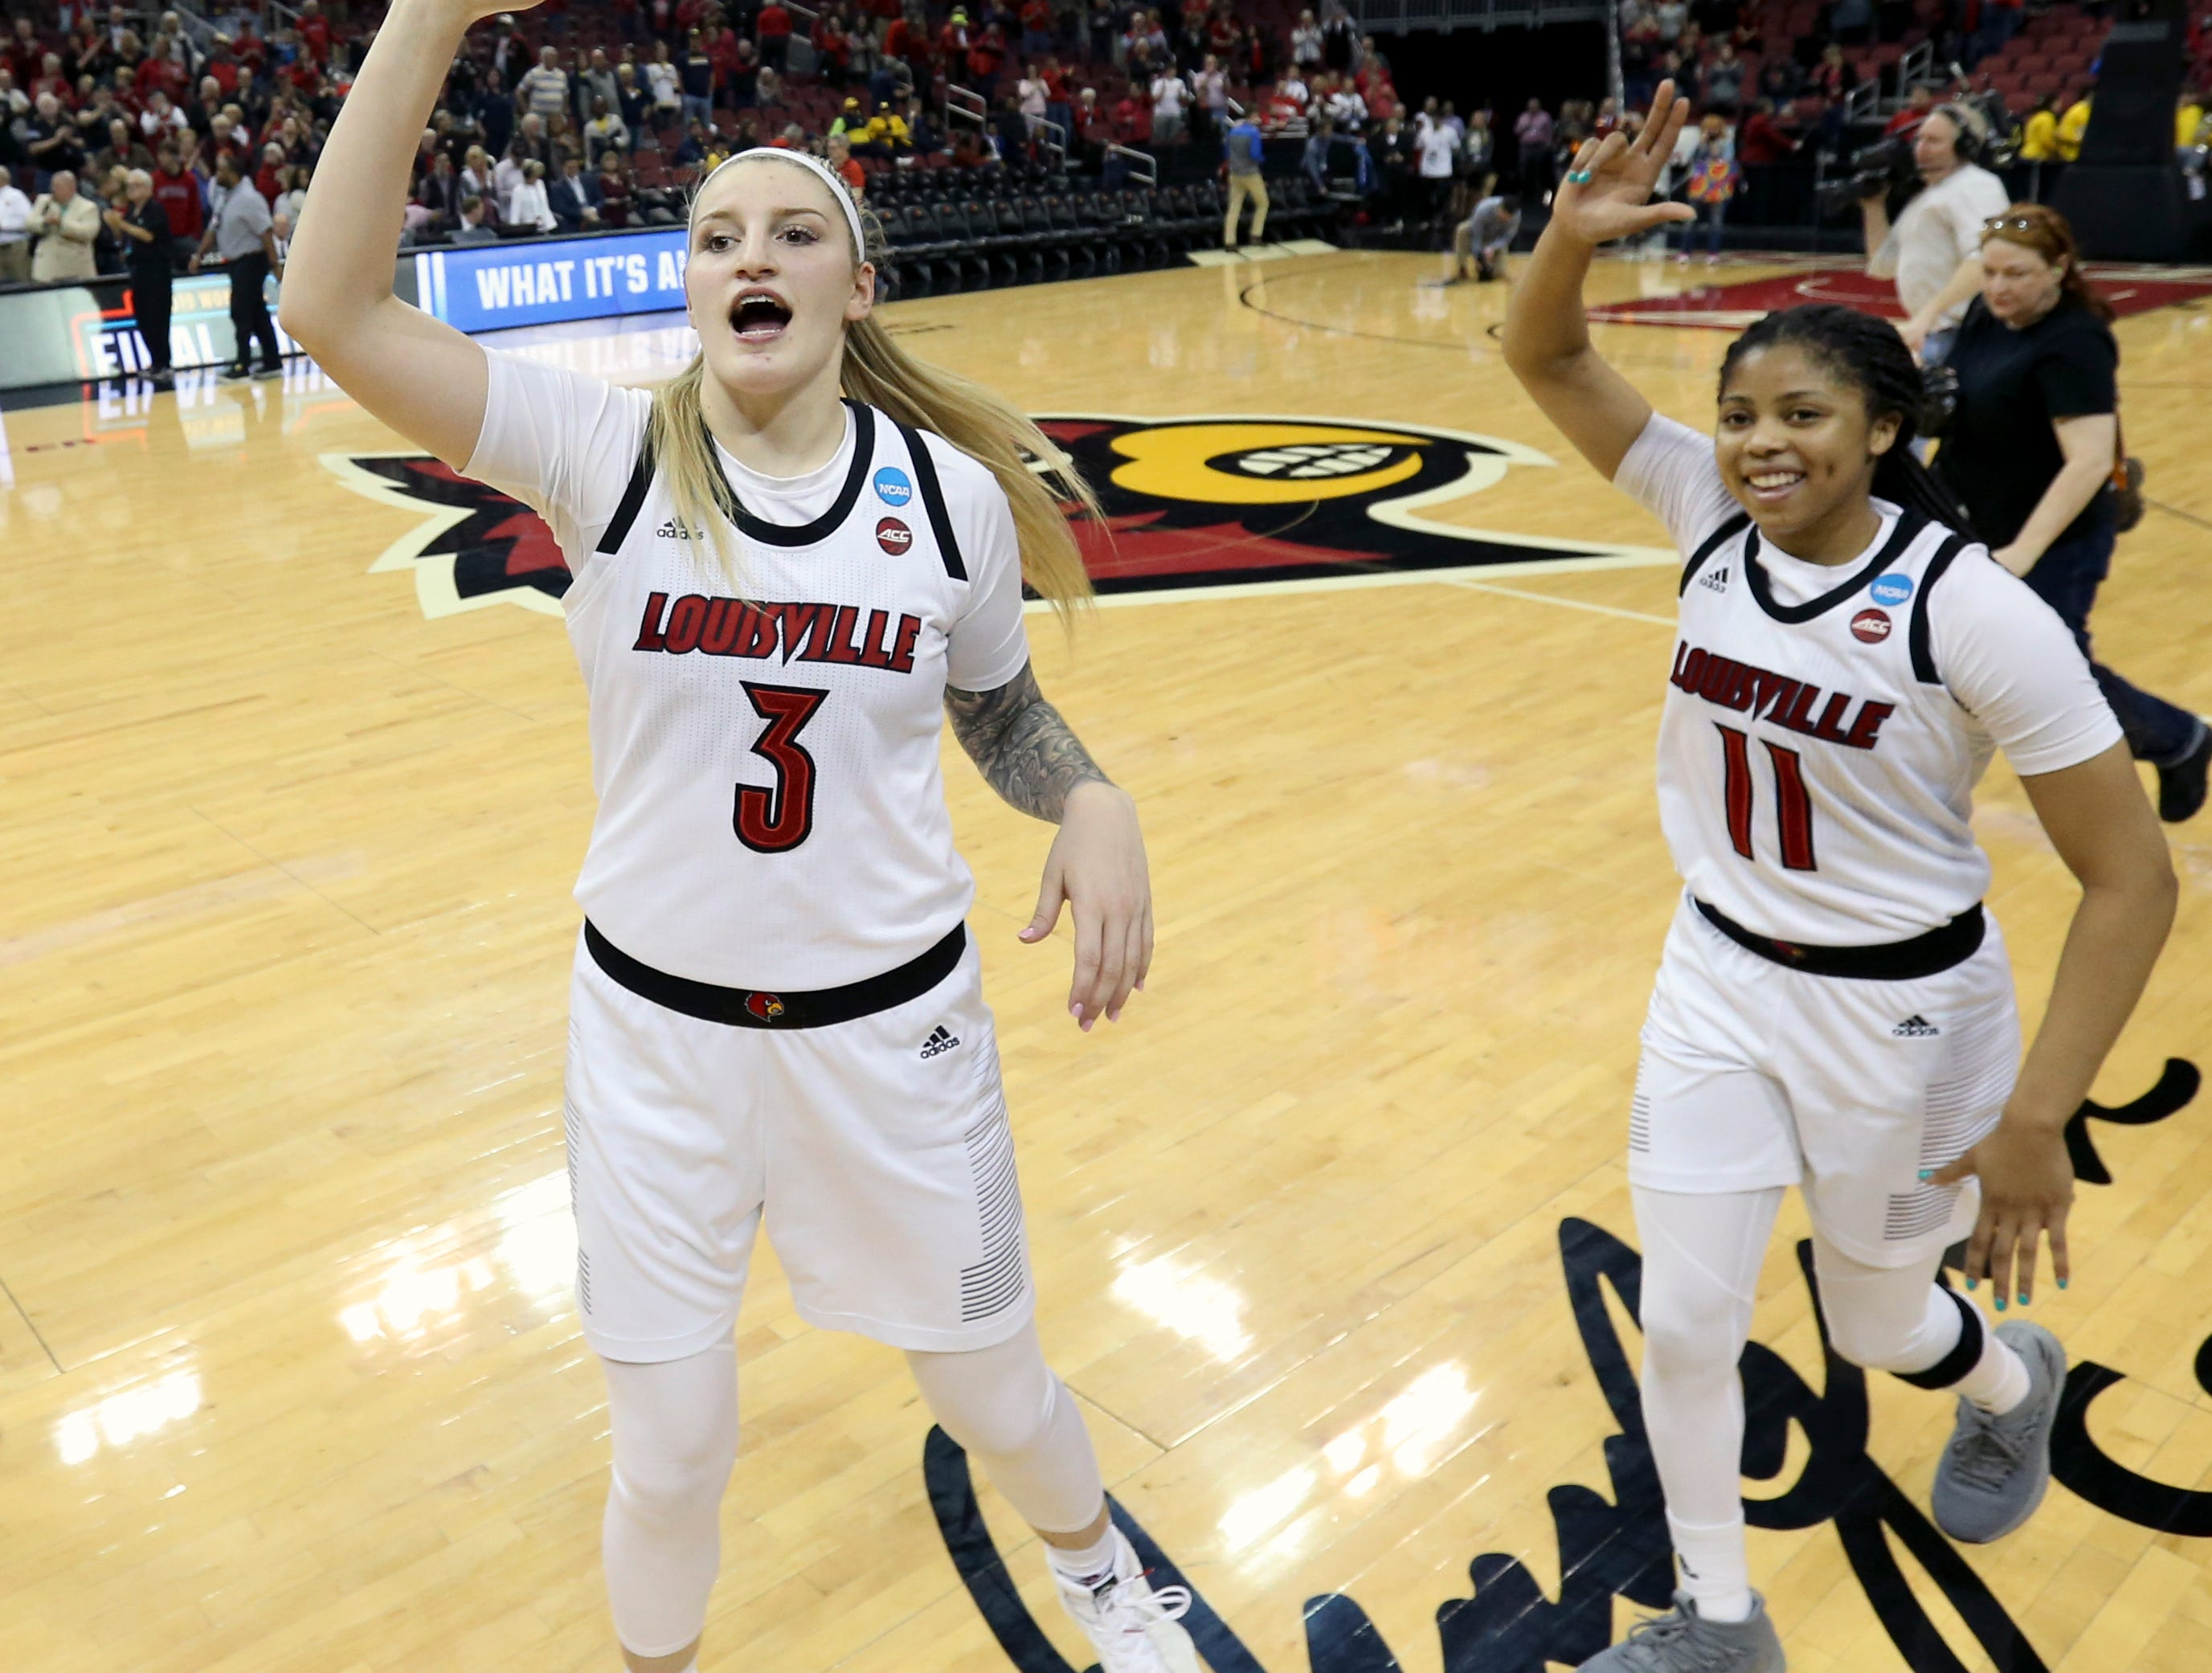 Louisville's Sam Fuehring , left, and Arica Carter do a celebration lap after the Cardinals punch their ticket to the Sweet 16 by beating Michigan at the KFC Yum Center on March 24.